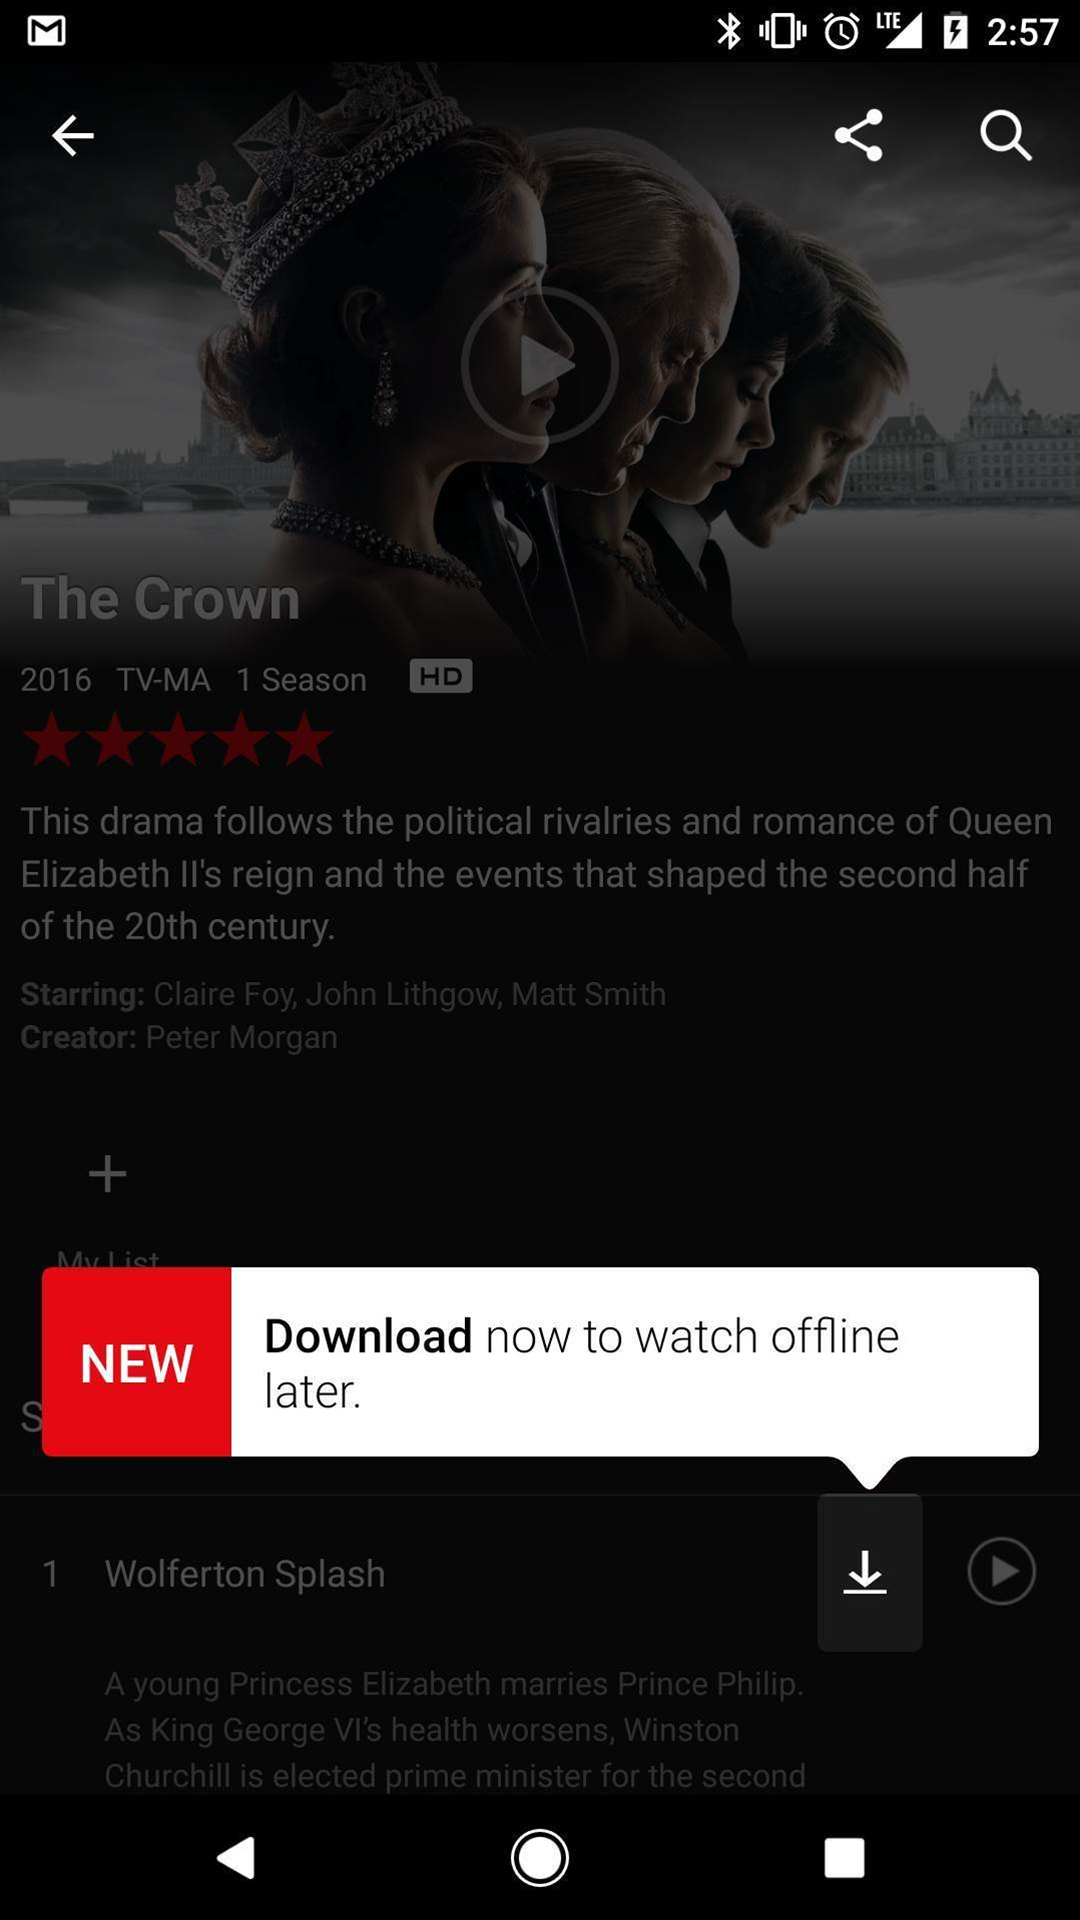 You can now download Netflix shows for offline playback